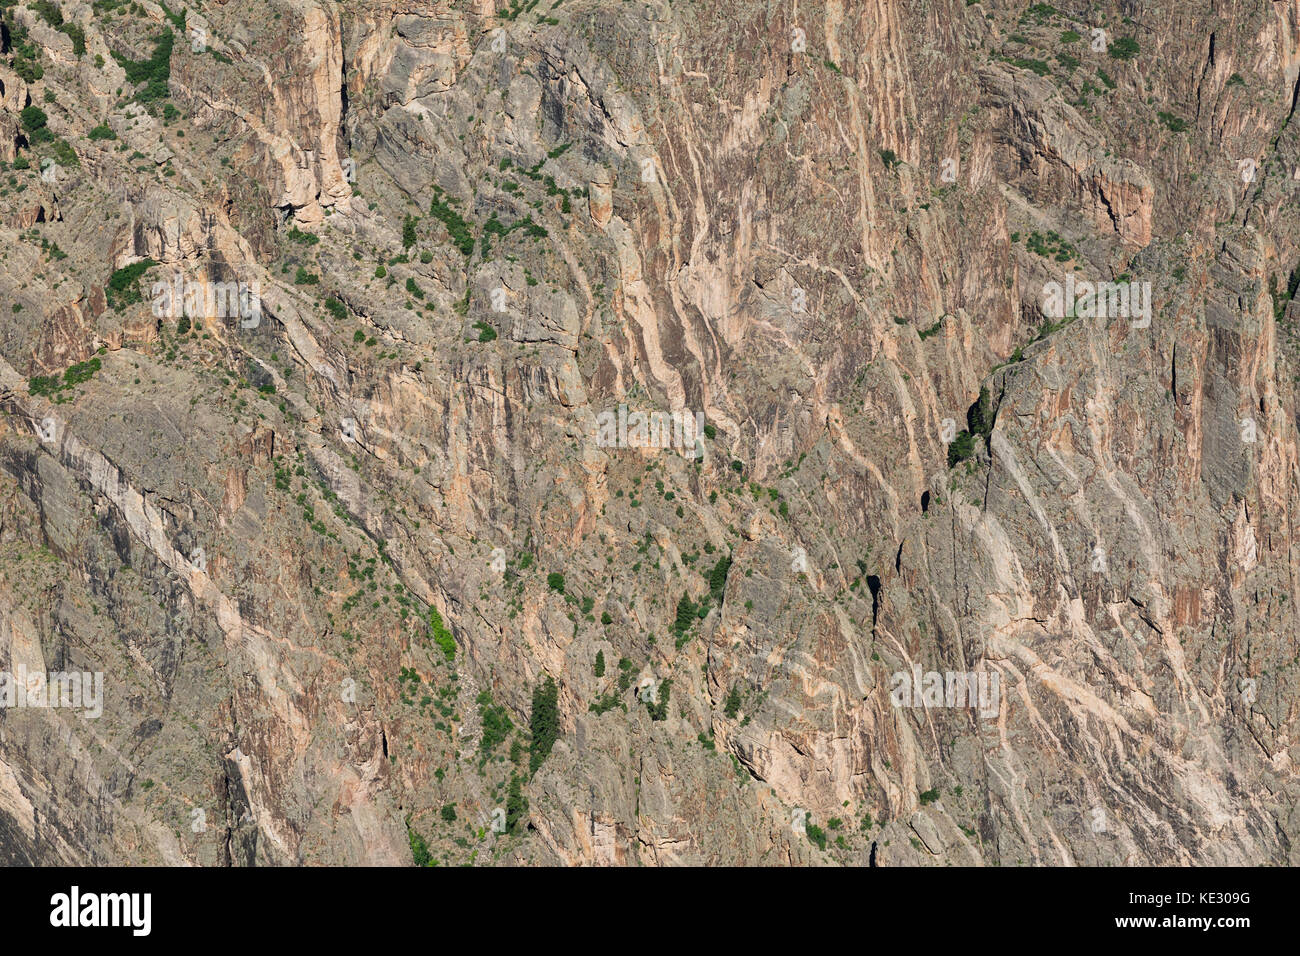 Close up of canyon wall showing pegmatite dikes running through precambrian gneiss and schist, Black Canyon of the - Stock Image